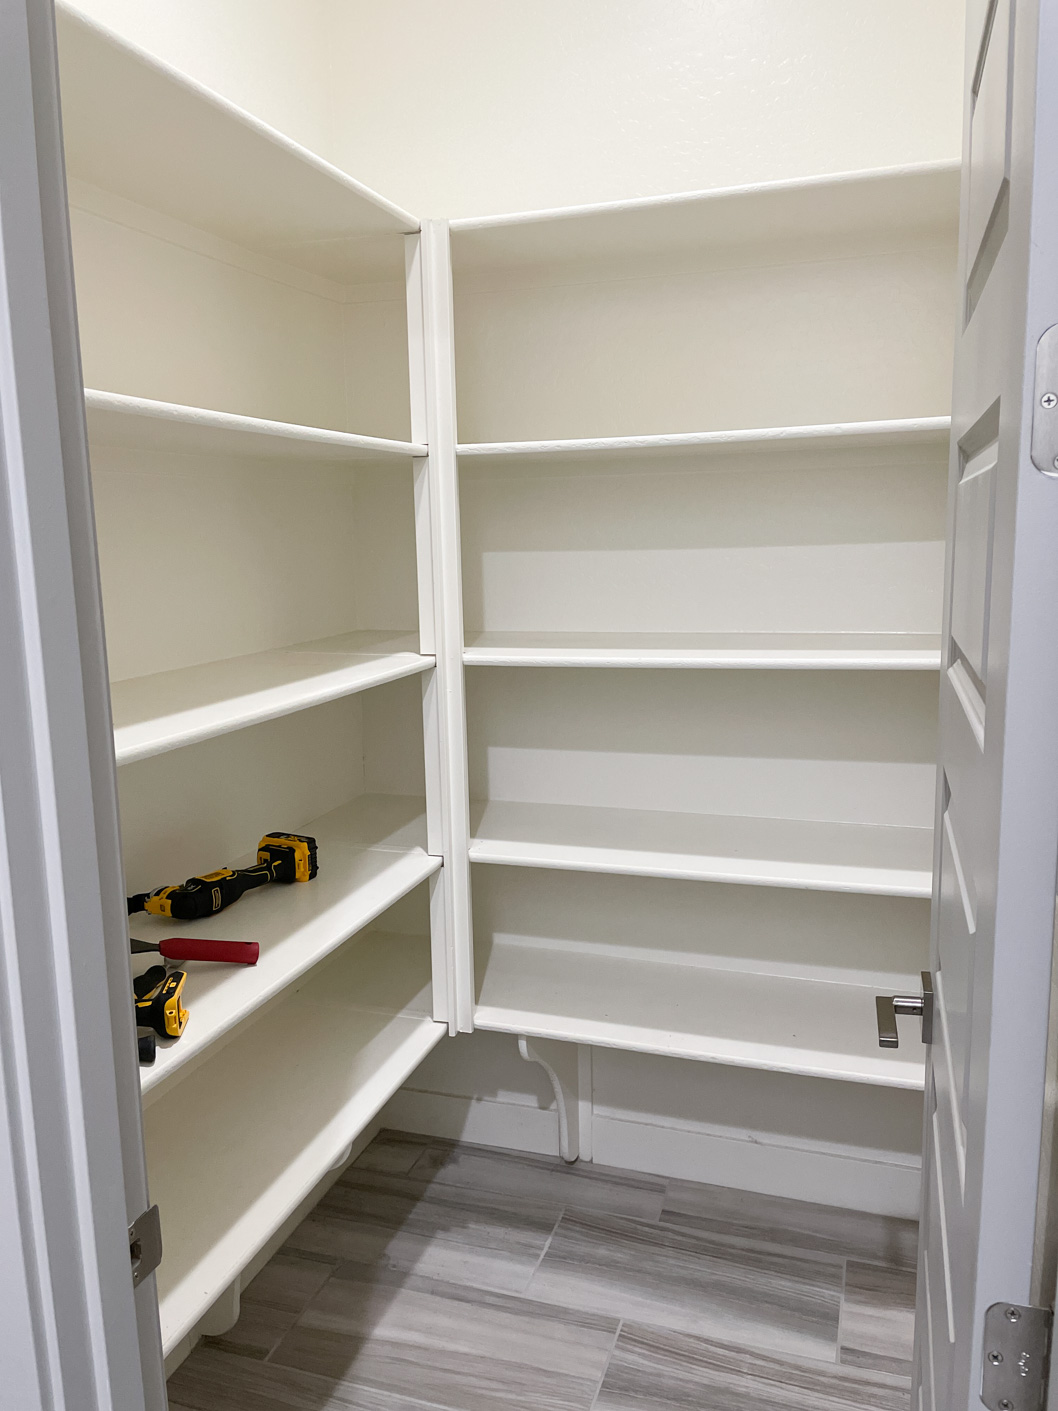 a picture of a pantry with shelves